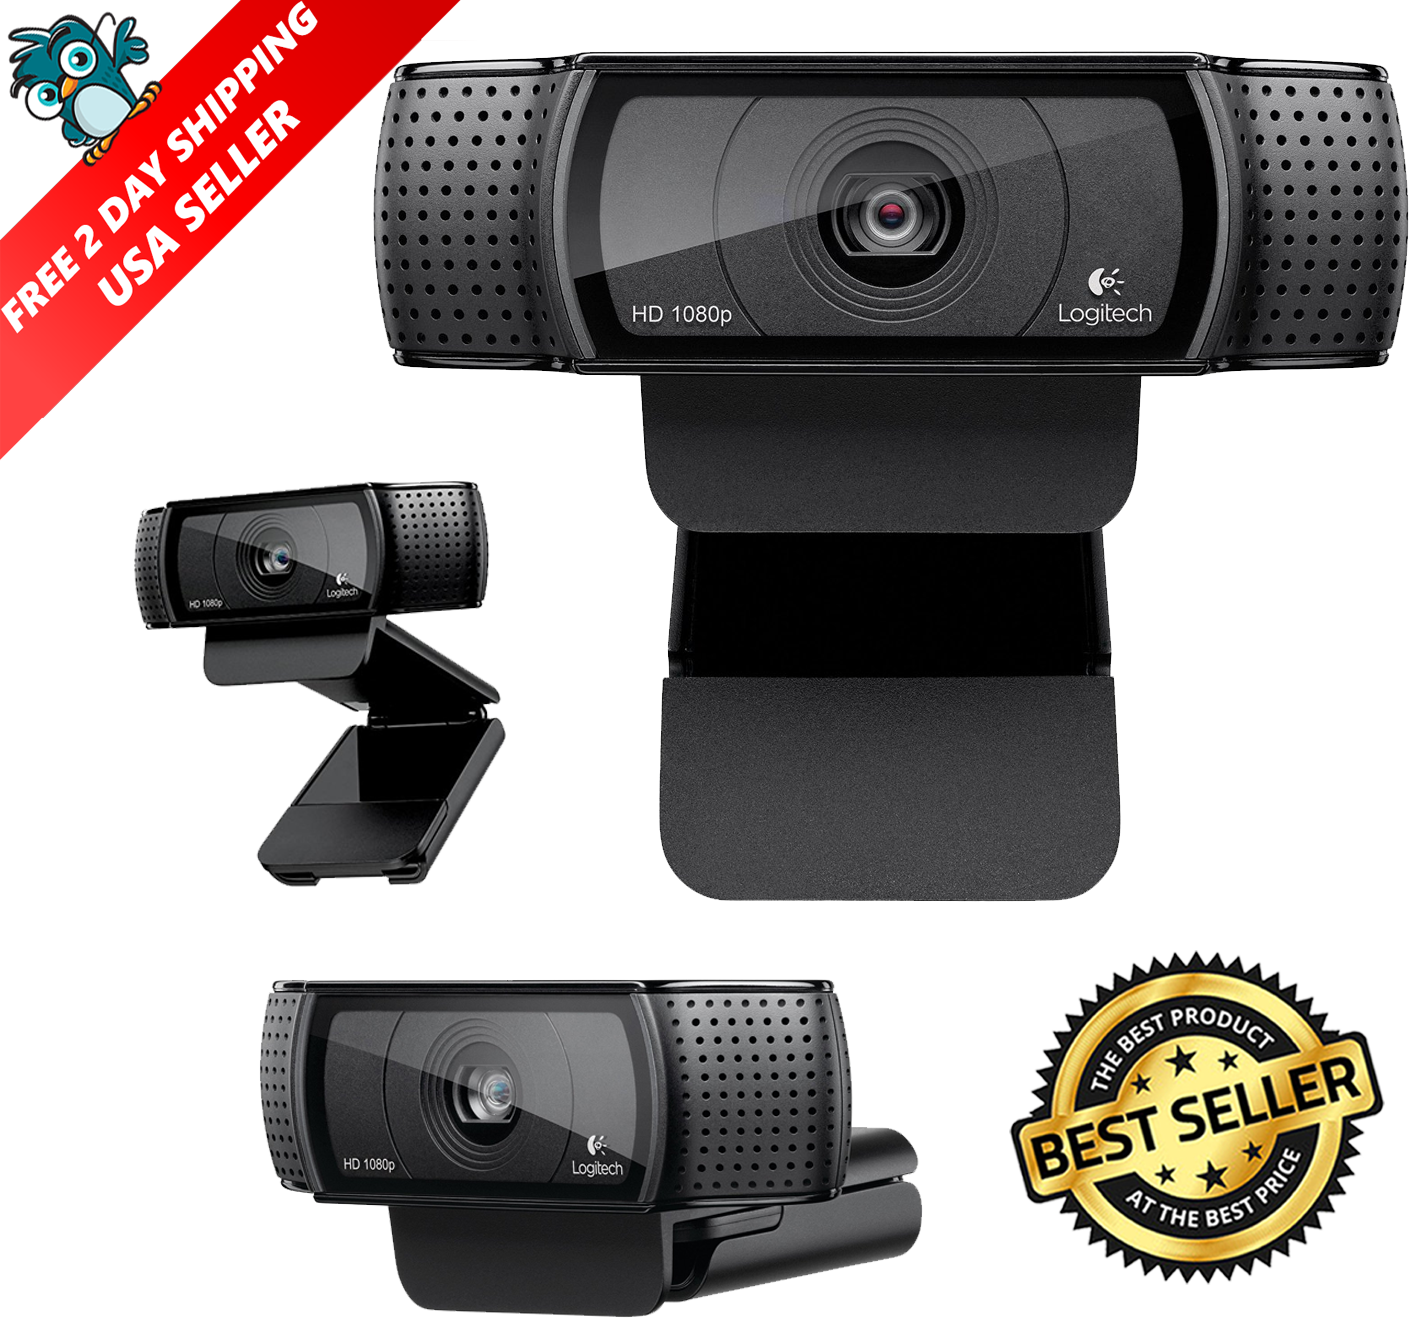 Logitech C920 Pro Stream Webcam 1080p Camera For Hd Video...